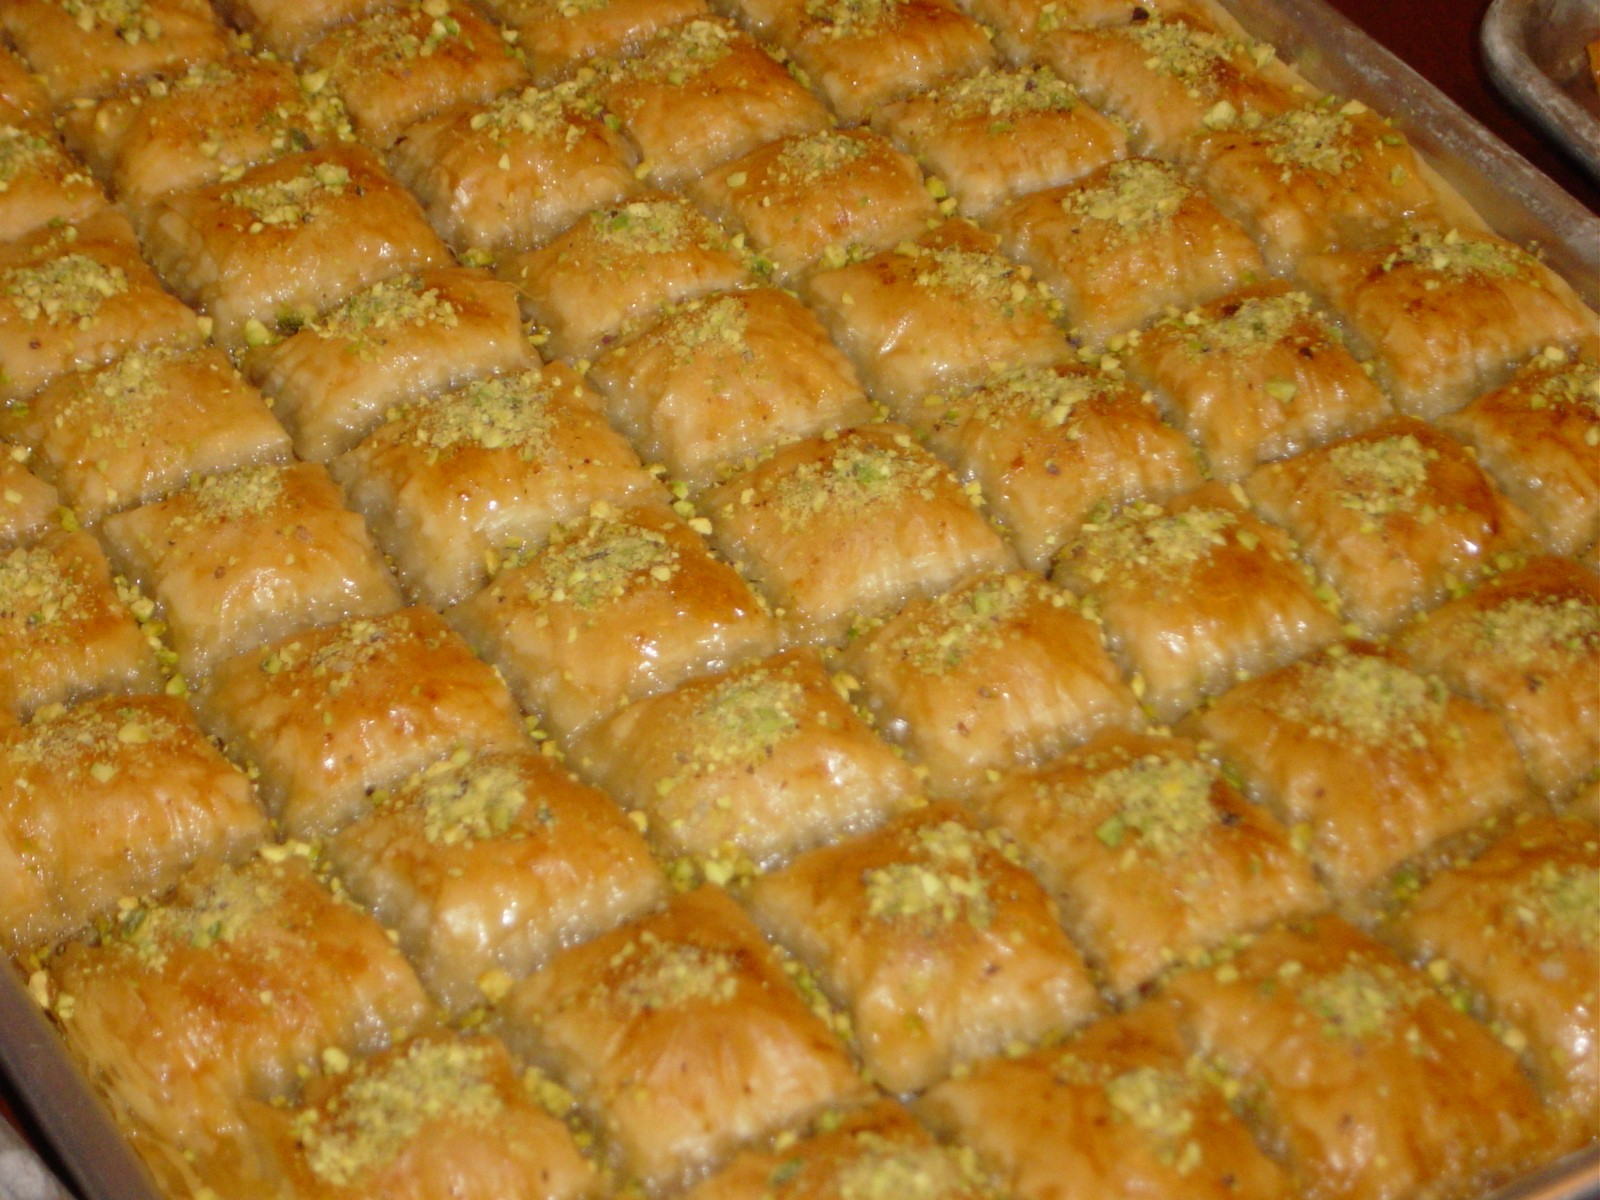 How To Make Baklava Without Oven